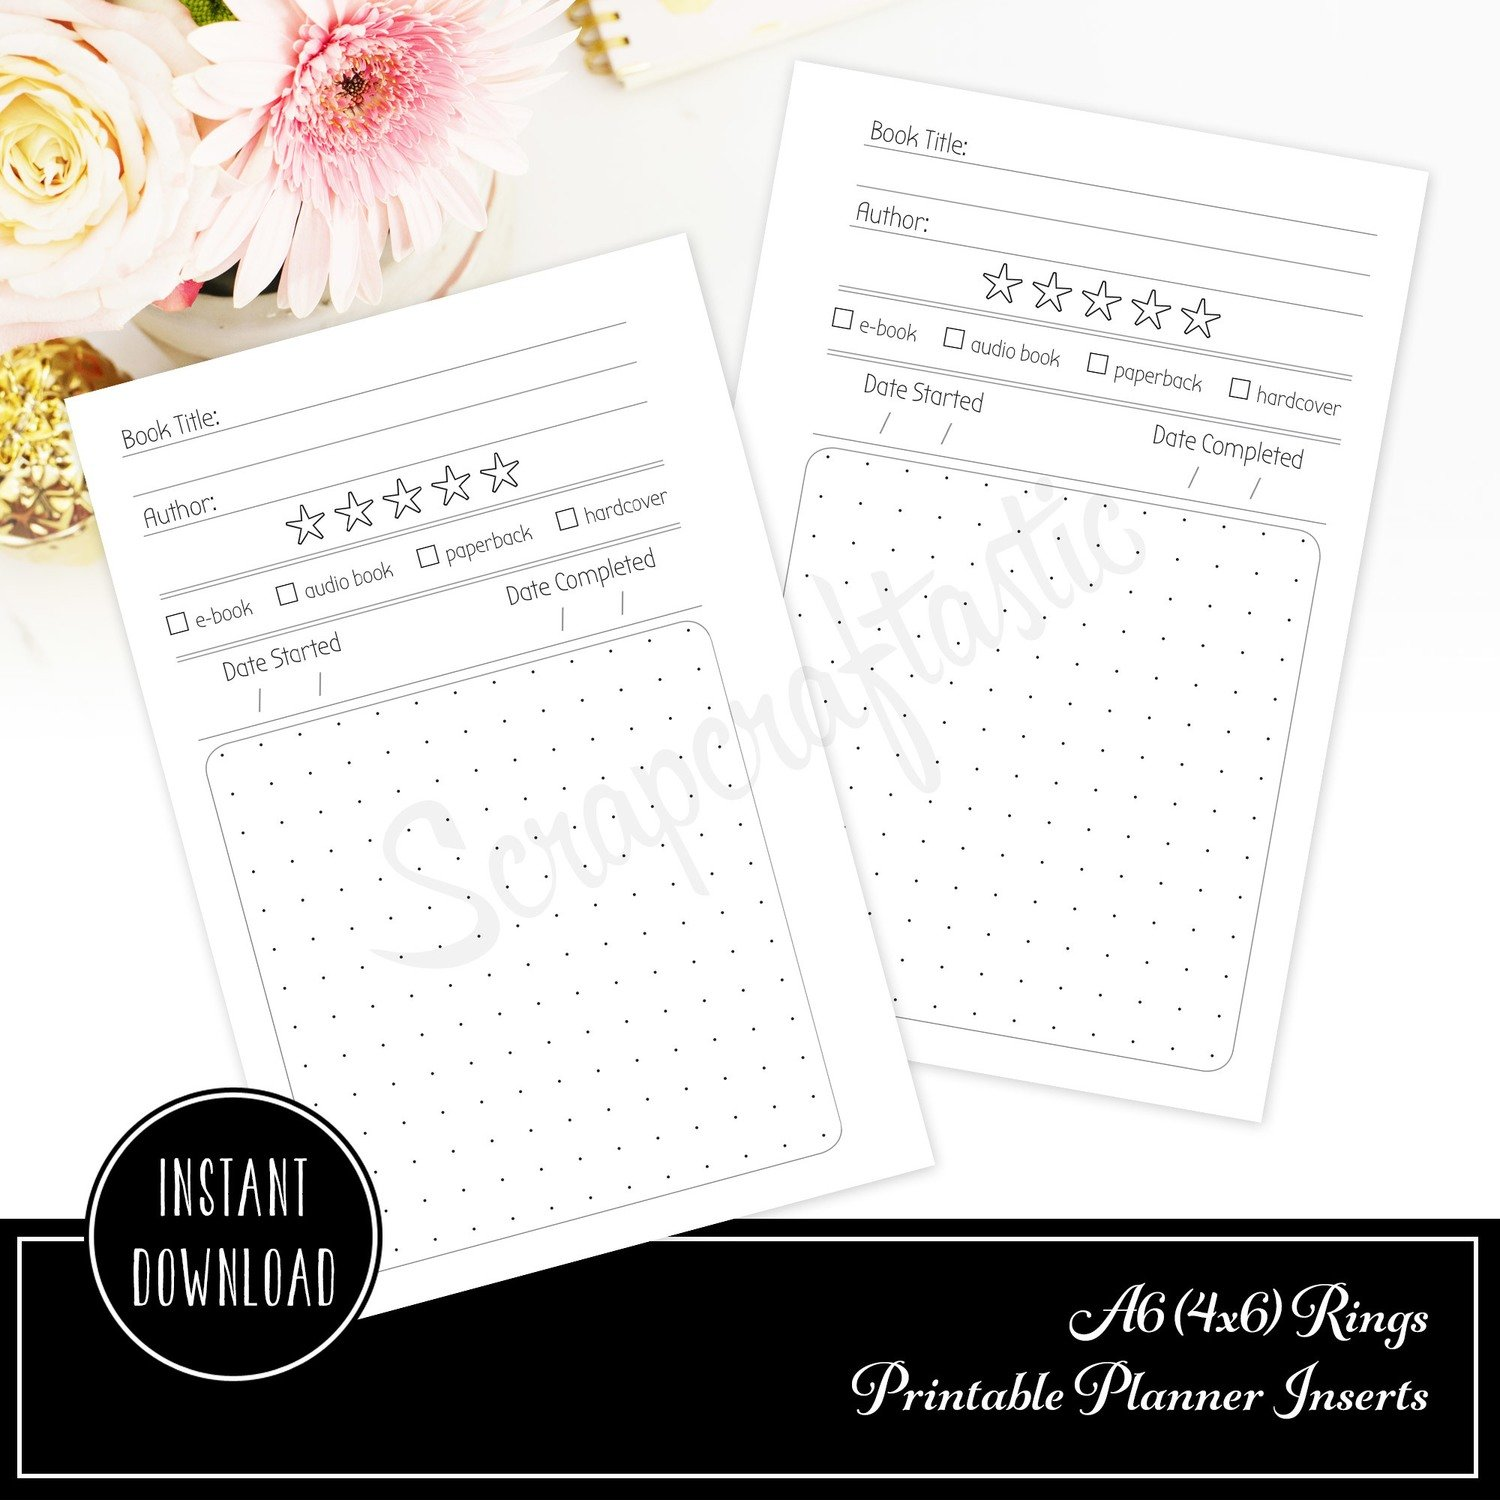 A6 RINGS - Reading Log Book Review A6 Rings / Binder Printable Planner Inserts